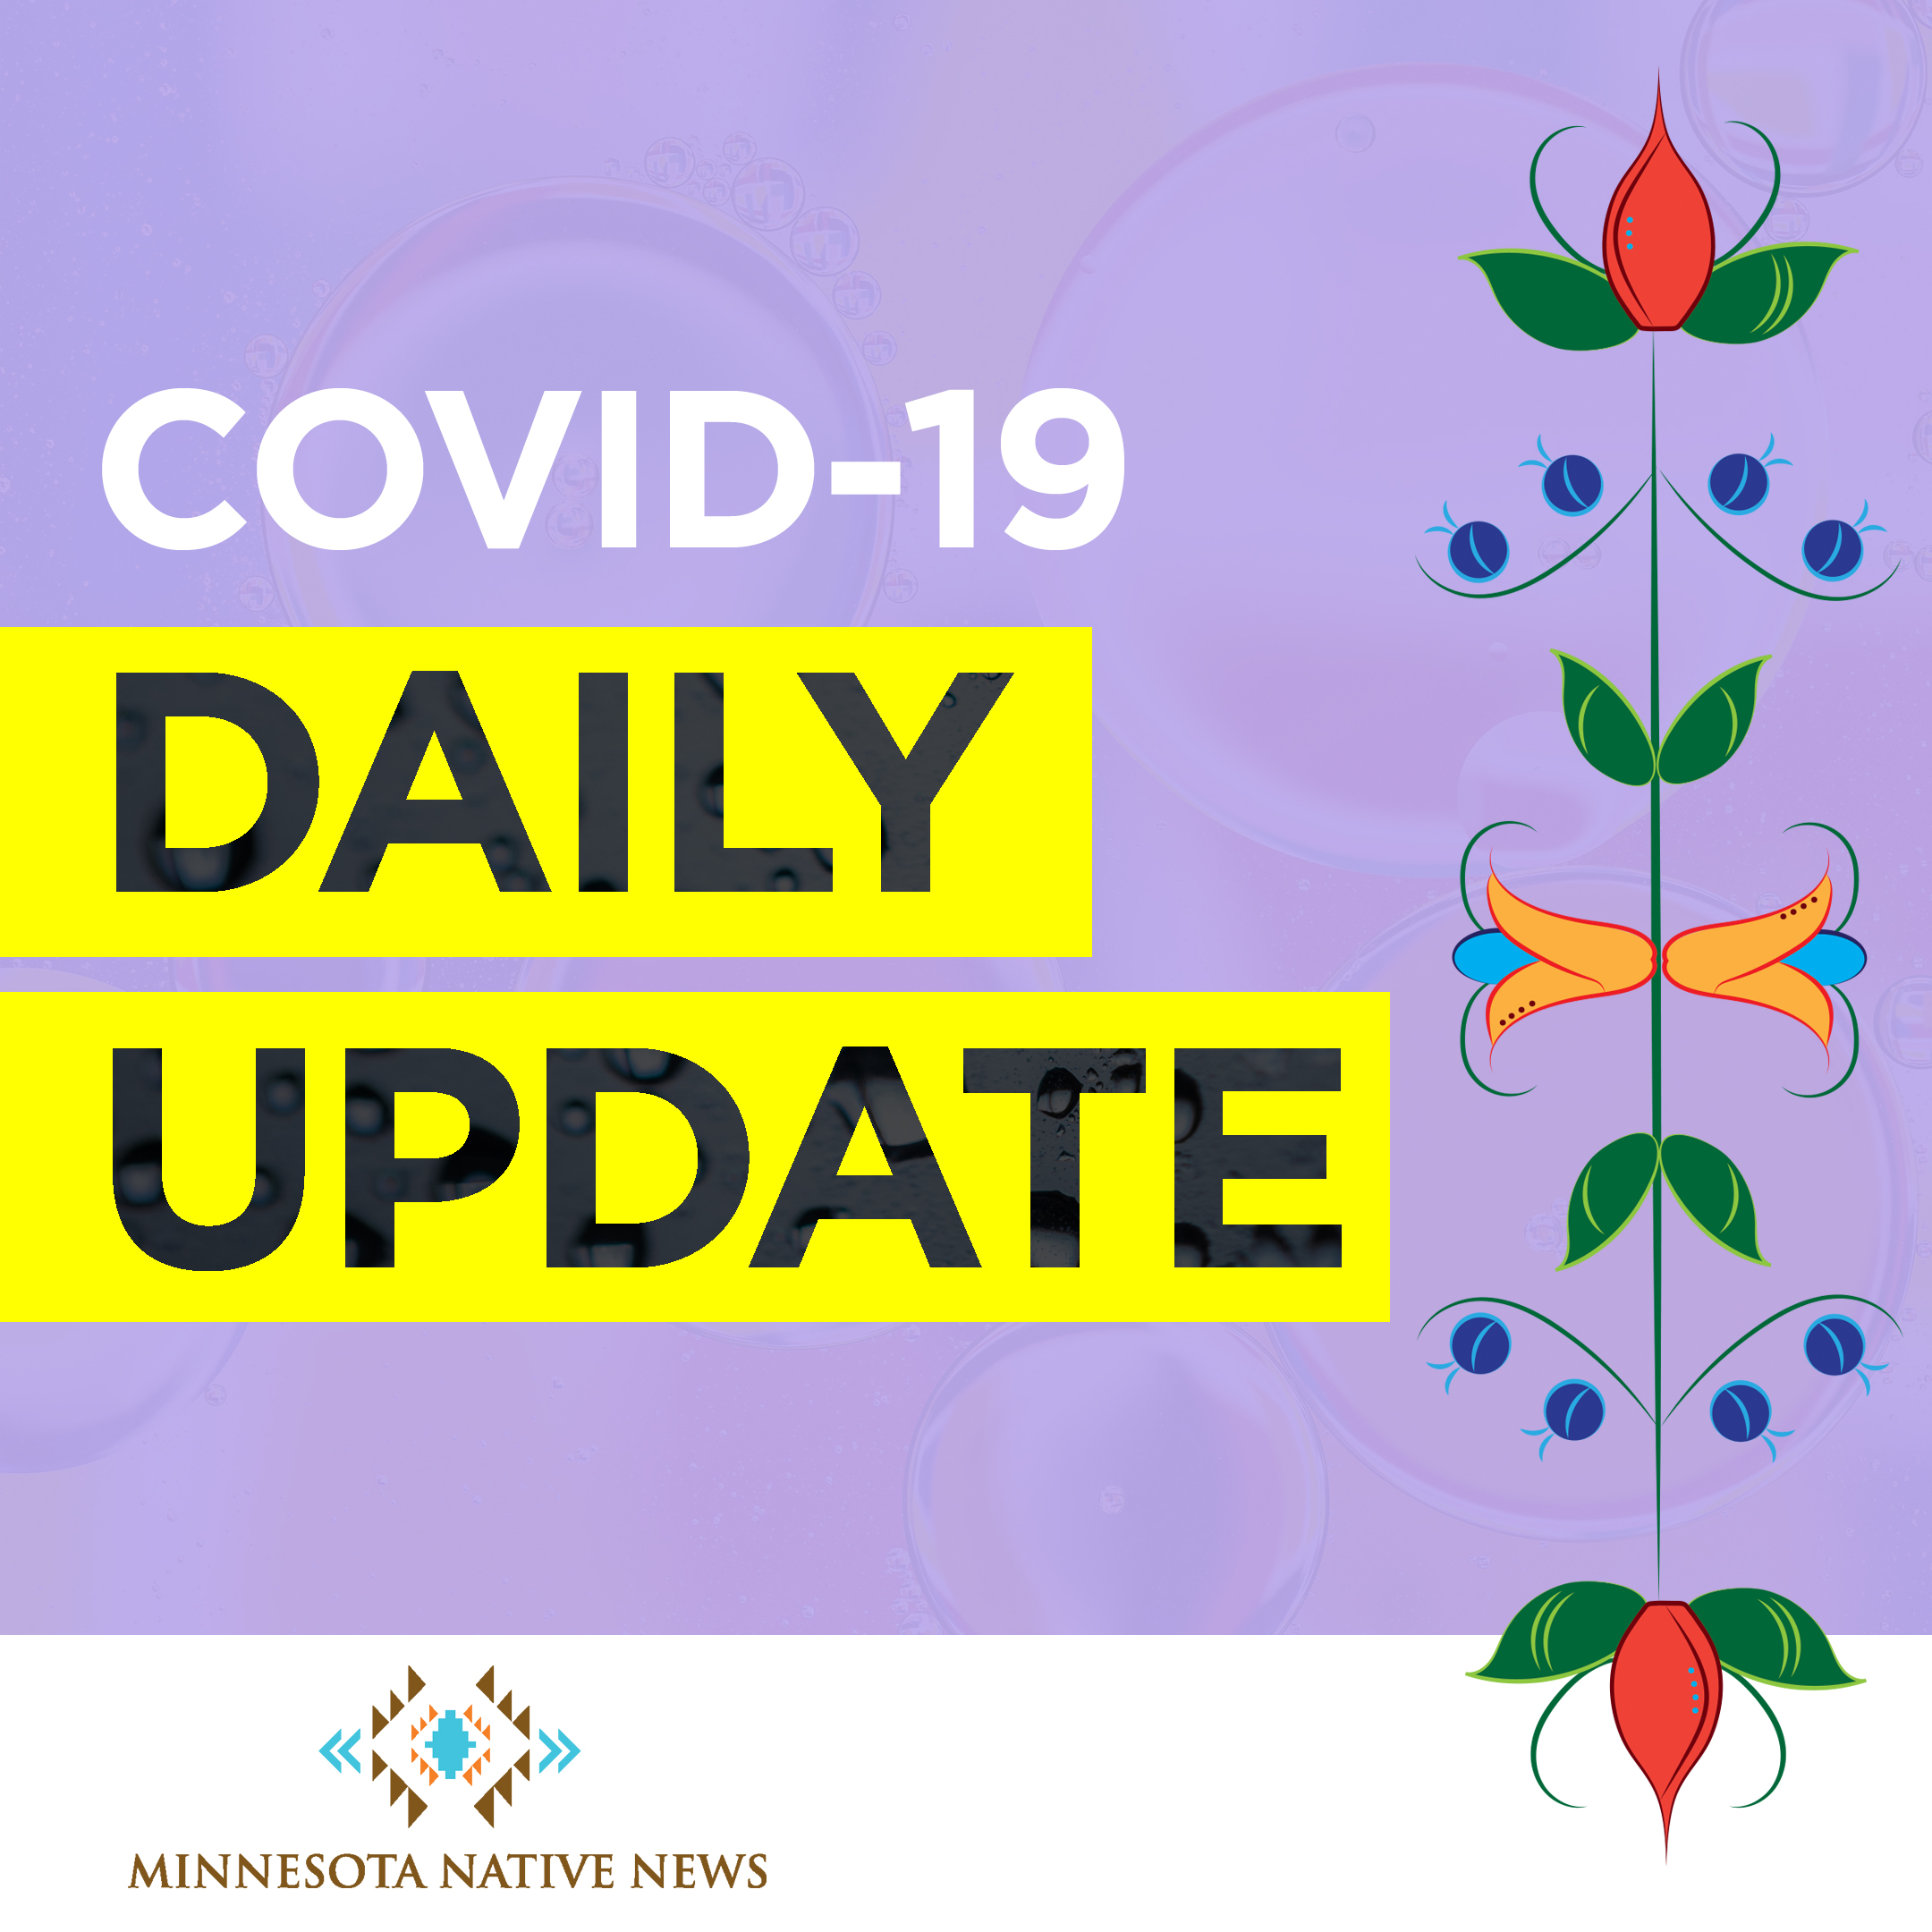 Indoor Gathering & Cold, Dry Air Could Increase COVID19 Transmission